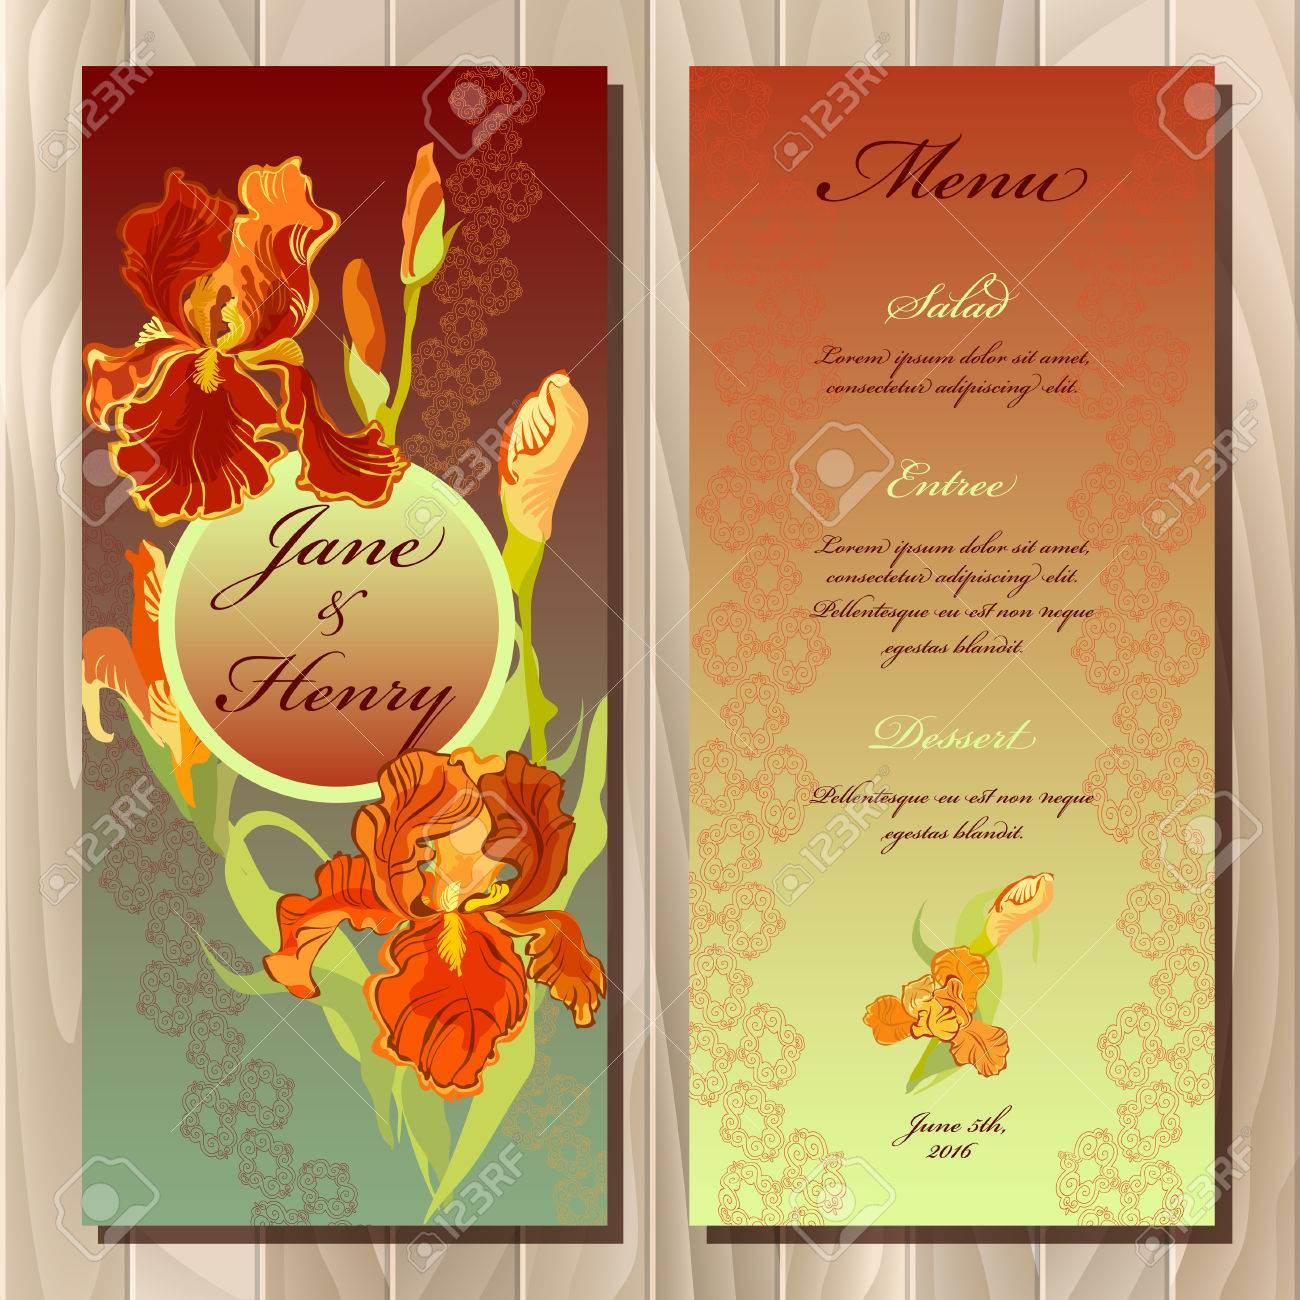 Wedding Menu Card With Iris Flowers And Lace Stripe Vector 1300x1300